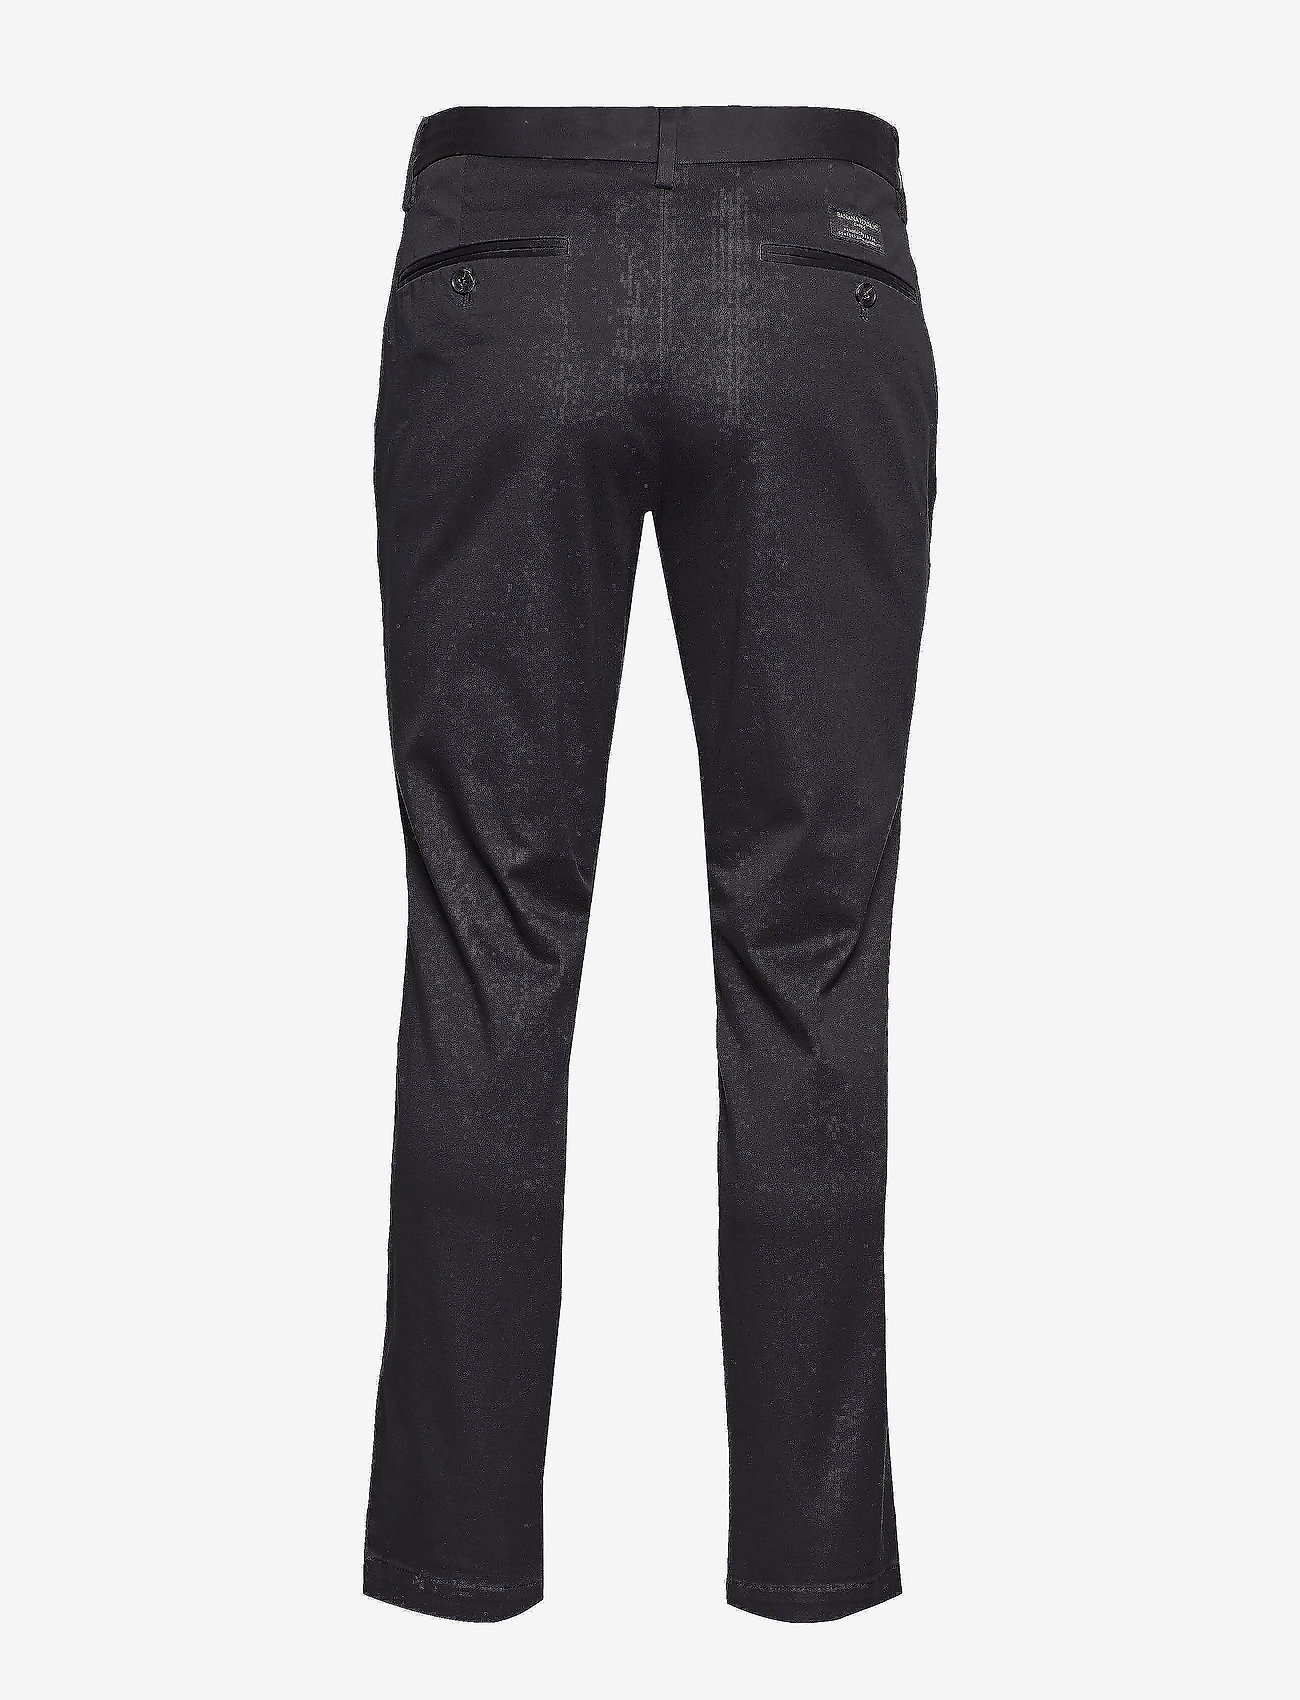 Banana Republic - Aiden Slim Rapid Movement Chino - chinos - black - 1